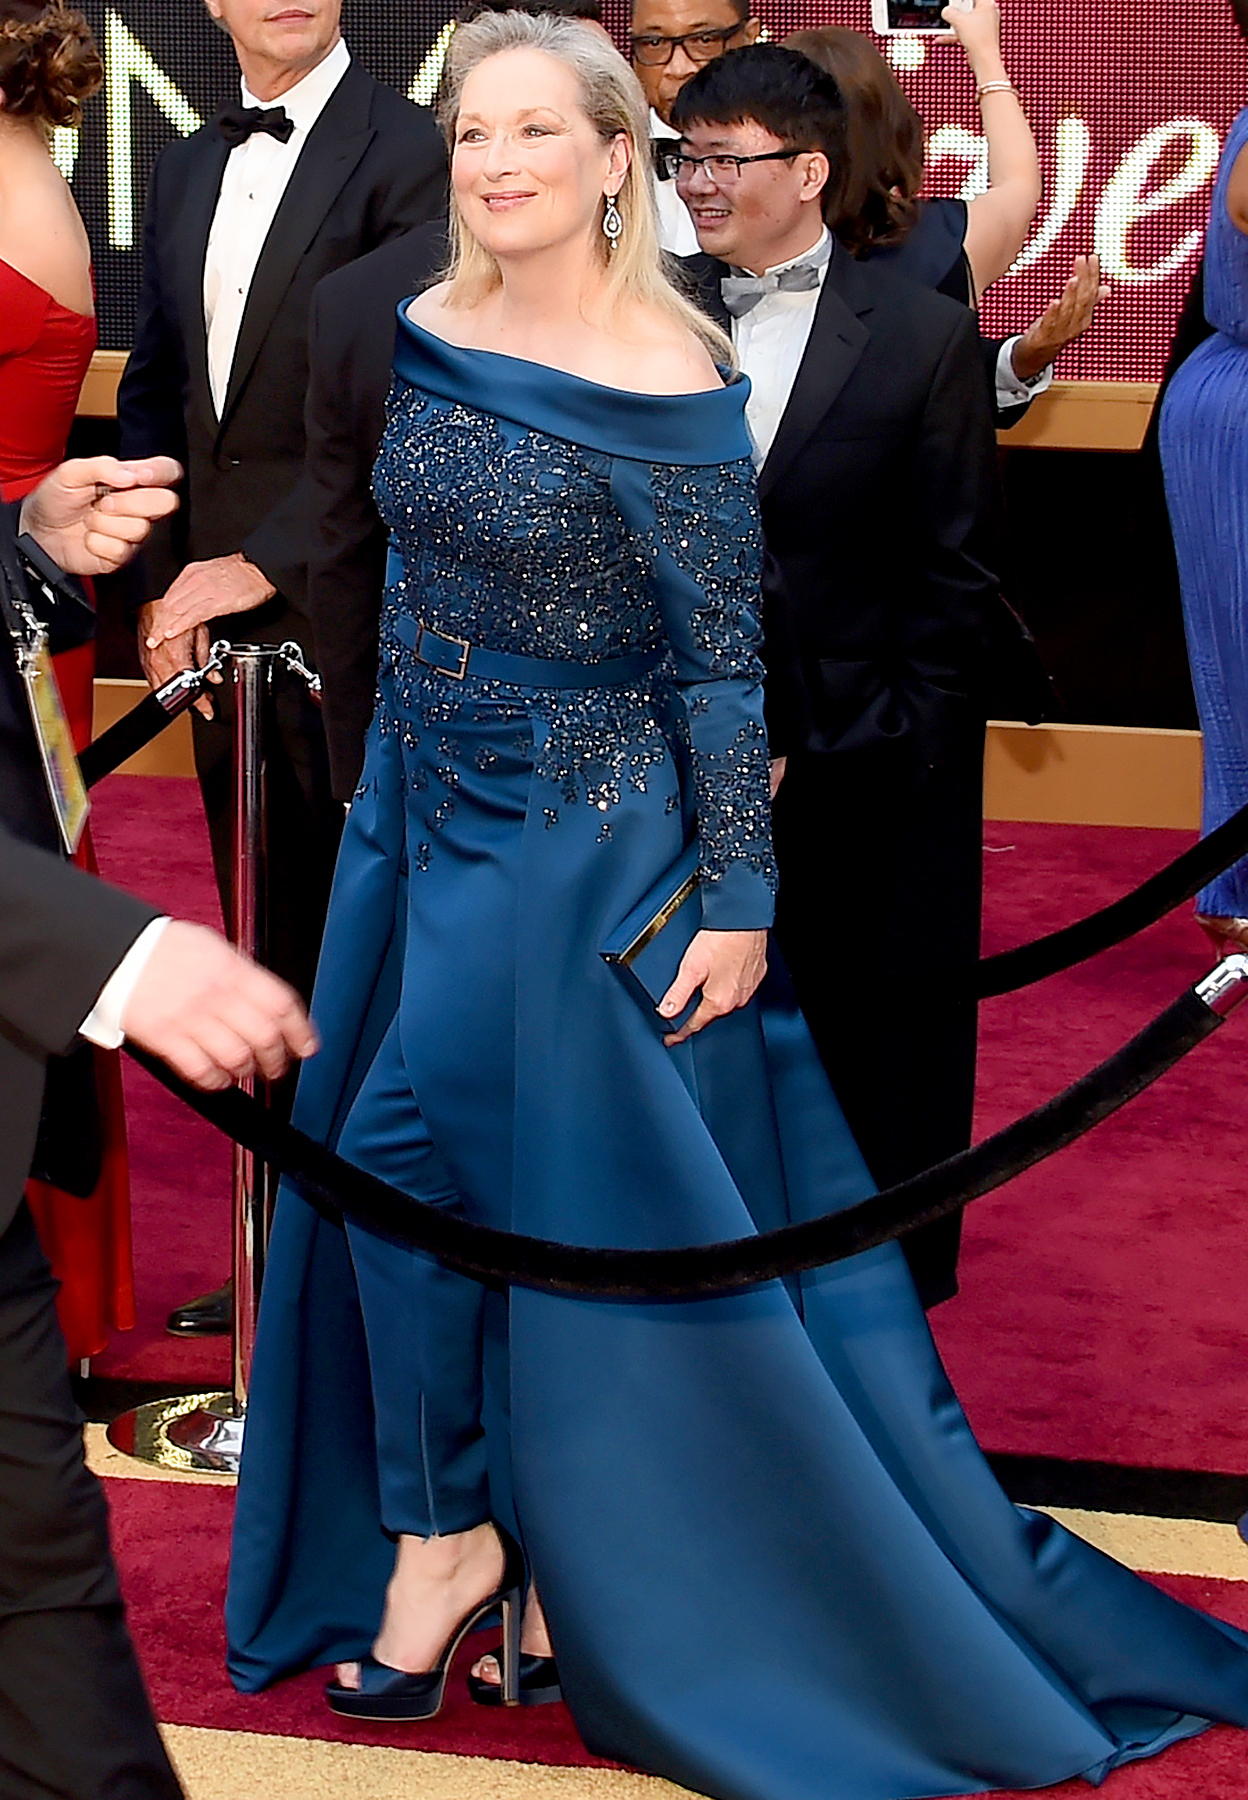 "Nominee for Best Actress ""Florence Foster Jenkins"" Meryl Streep arrives on the red carpet for the 89th Oscars on February 26, 2017 in Hollywood, California."